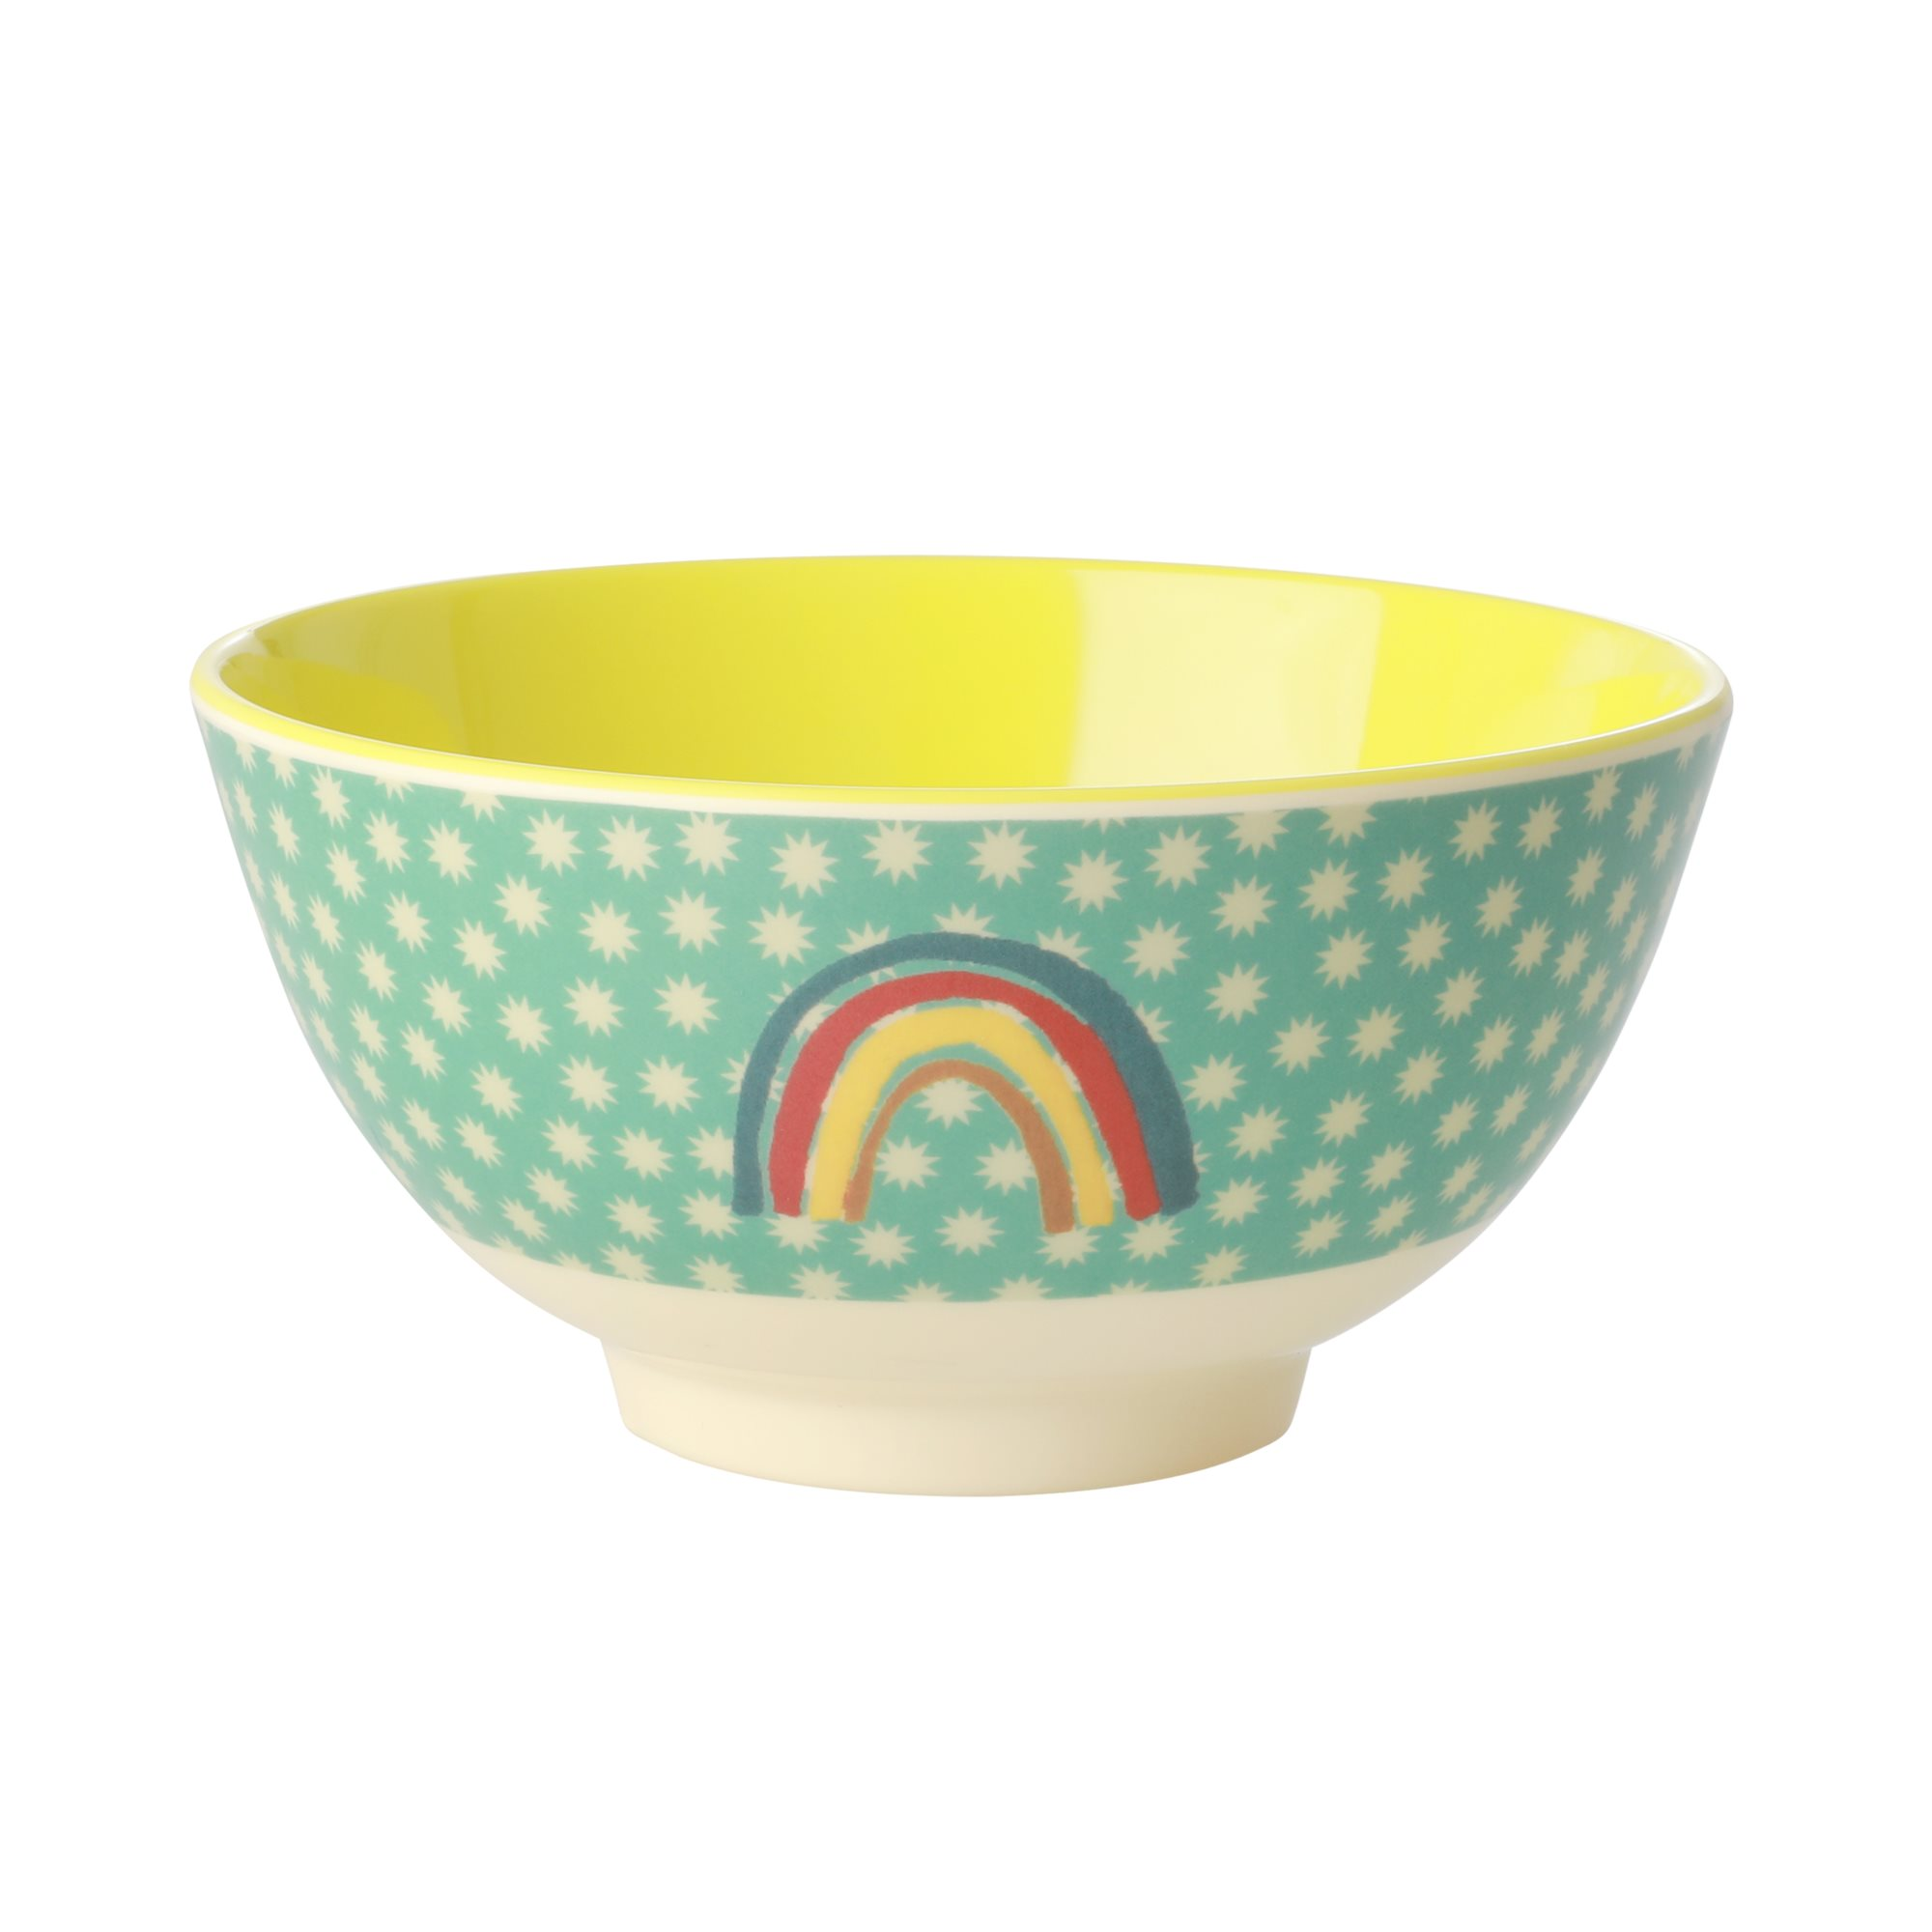 Medium Melamine Bowl - Rainbow and Stars Print - rice